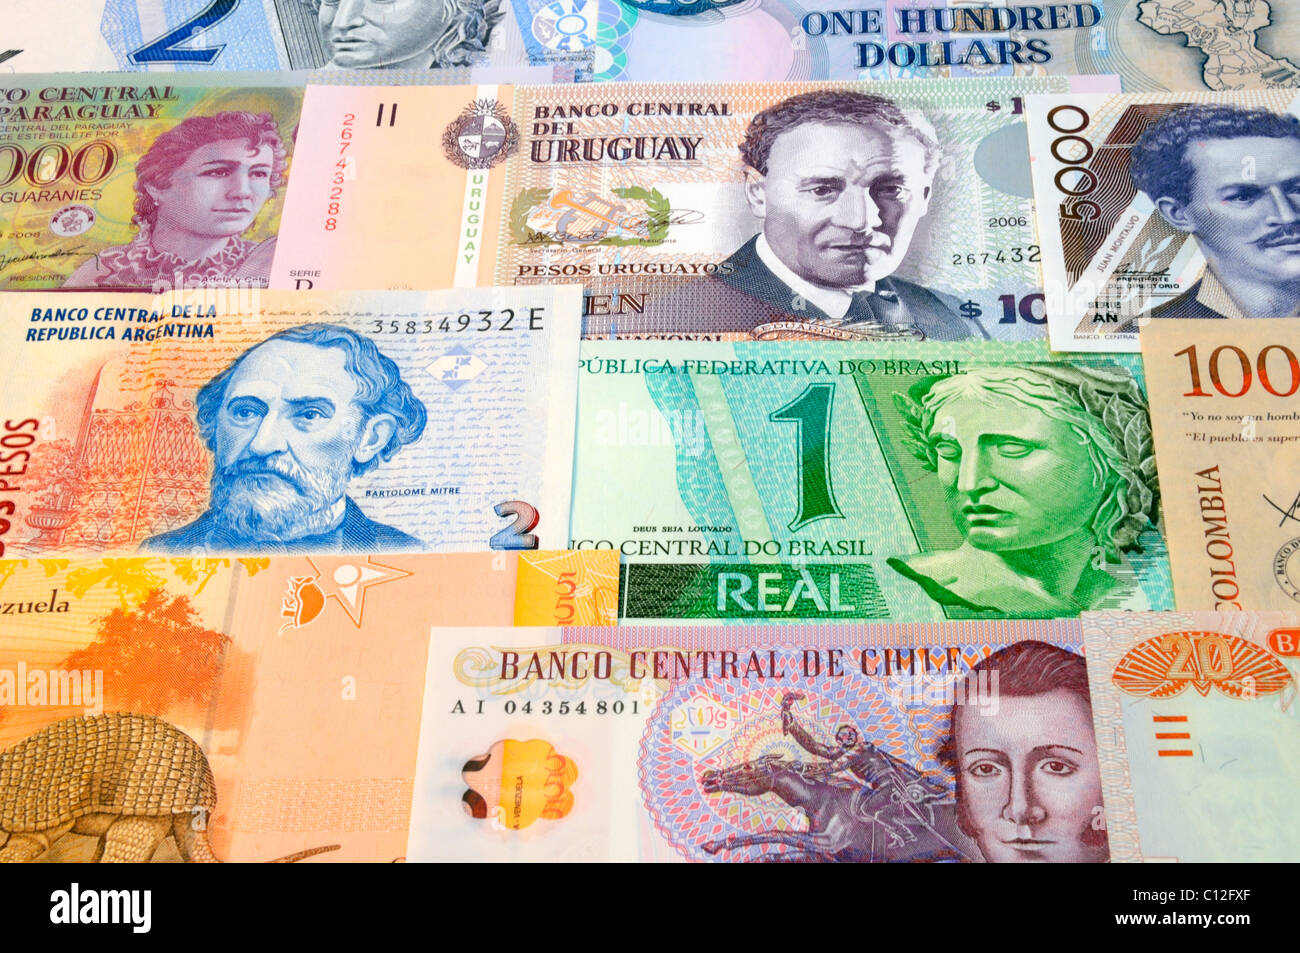 South American Bank Notes. - Stock Image